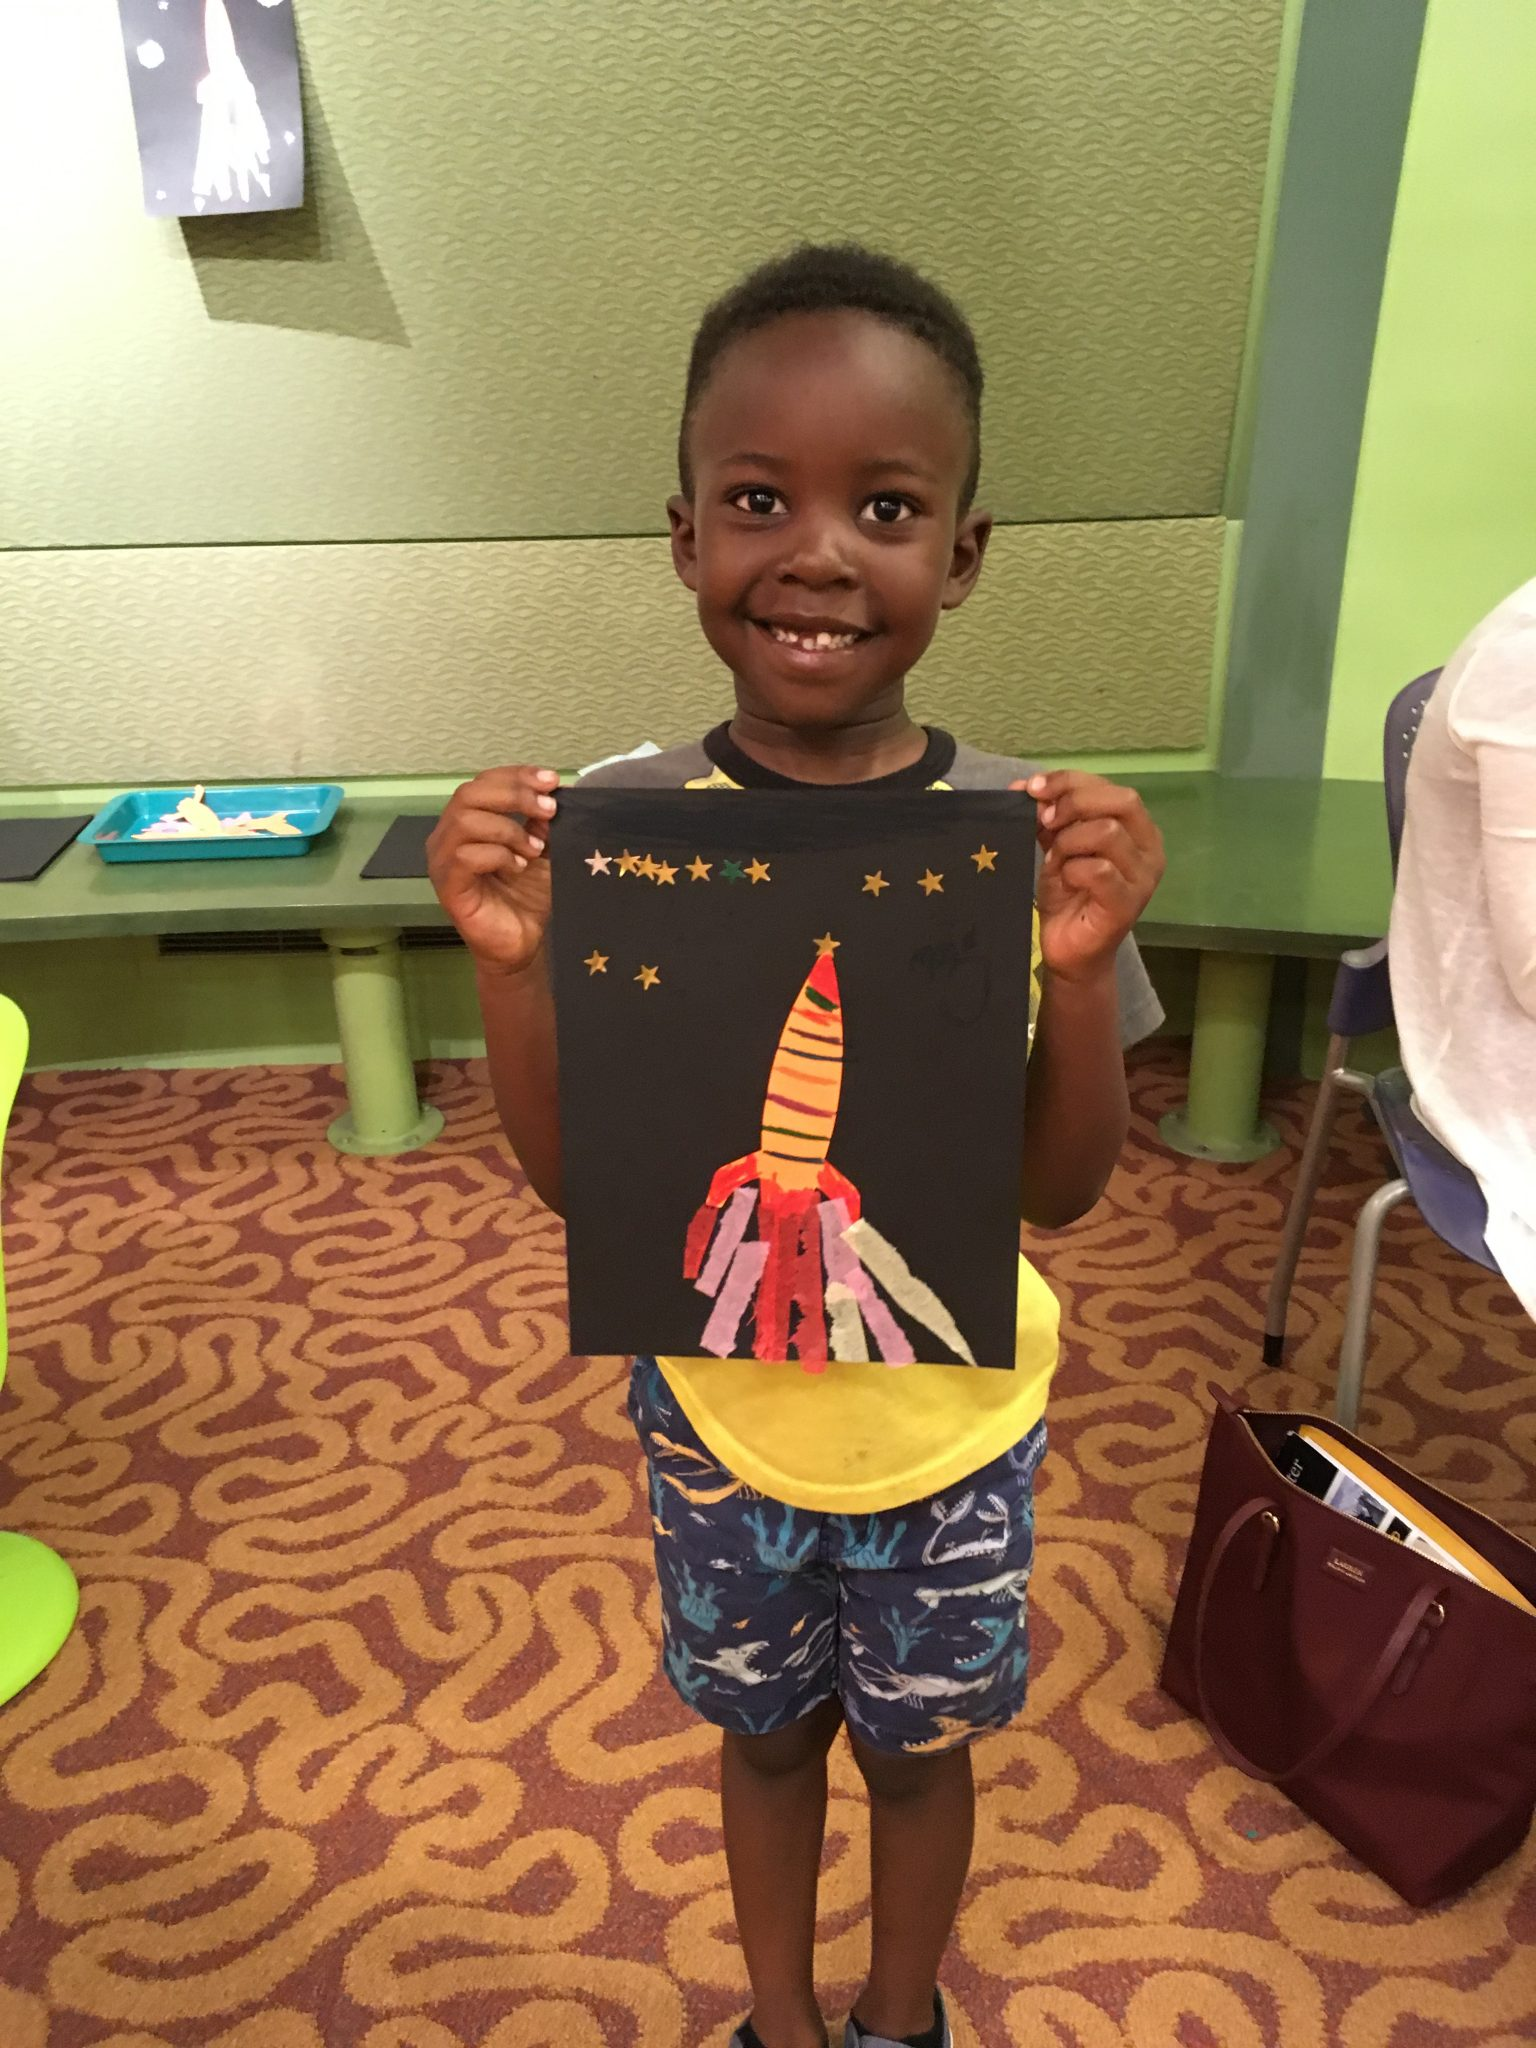 child holds up finished rocket art